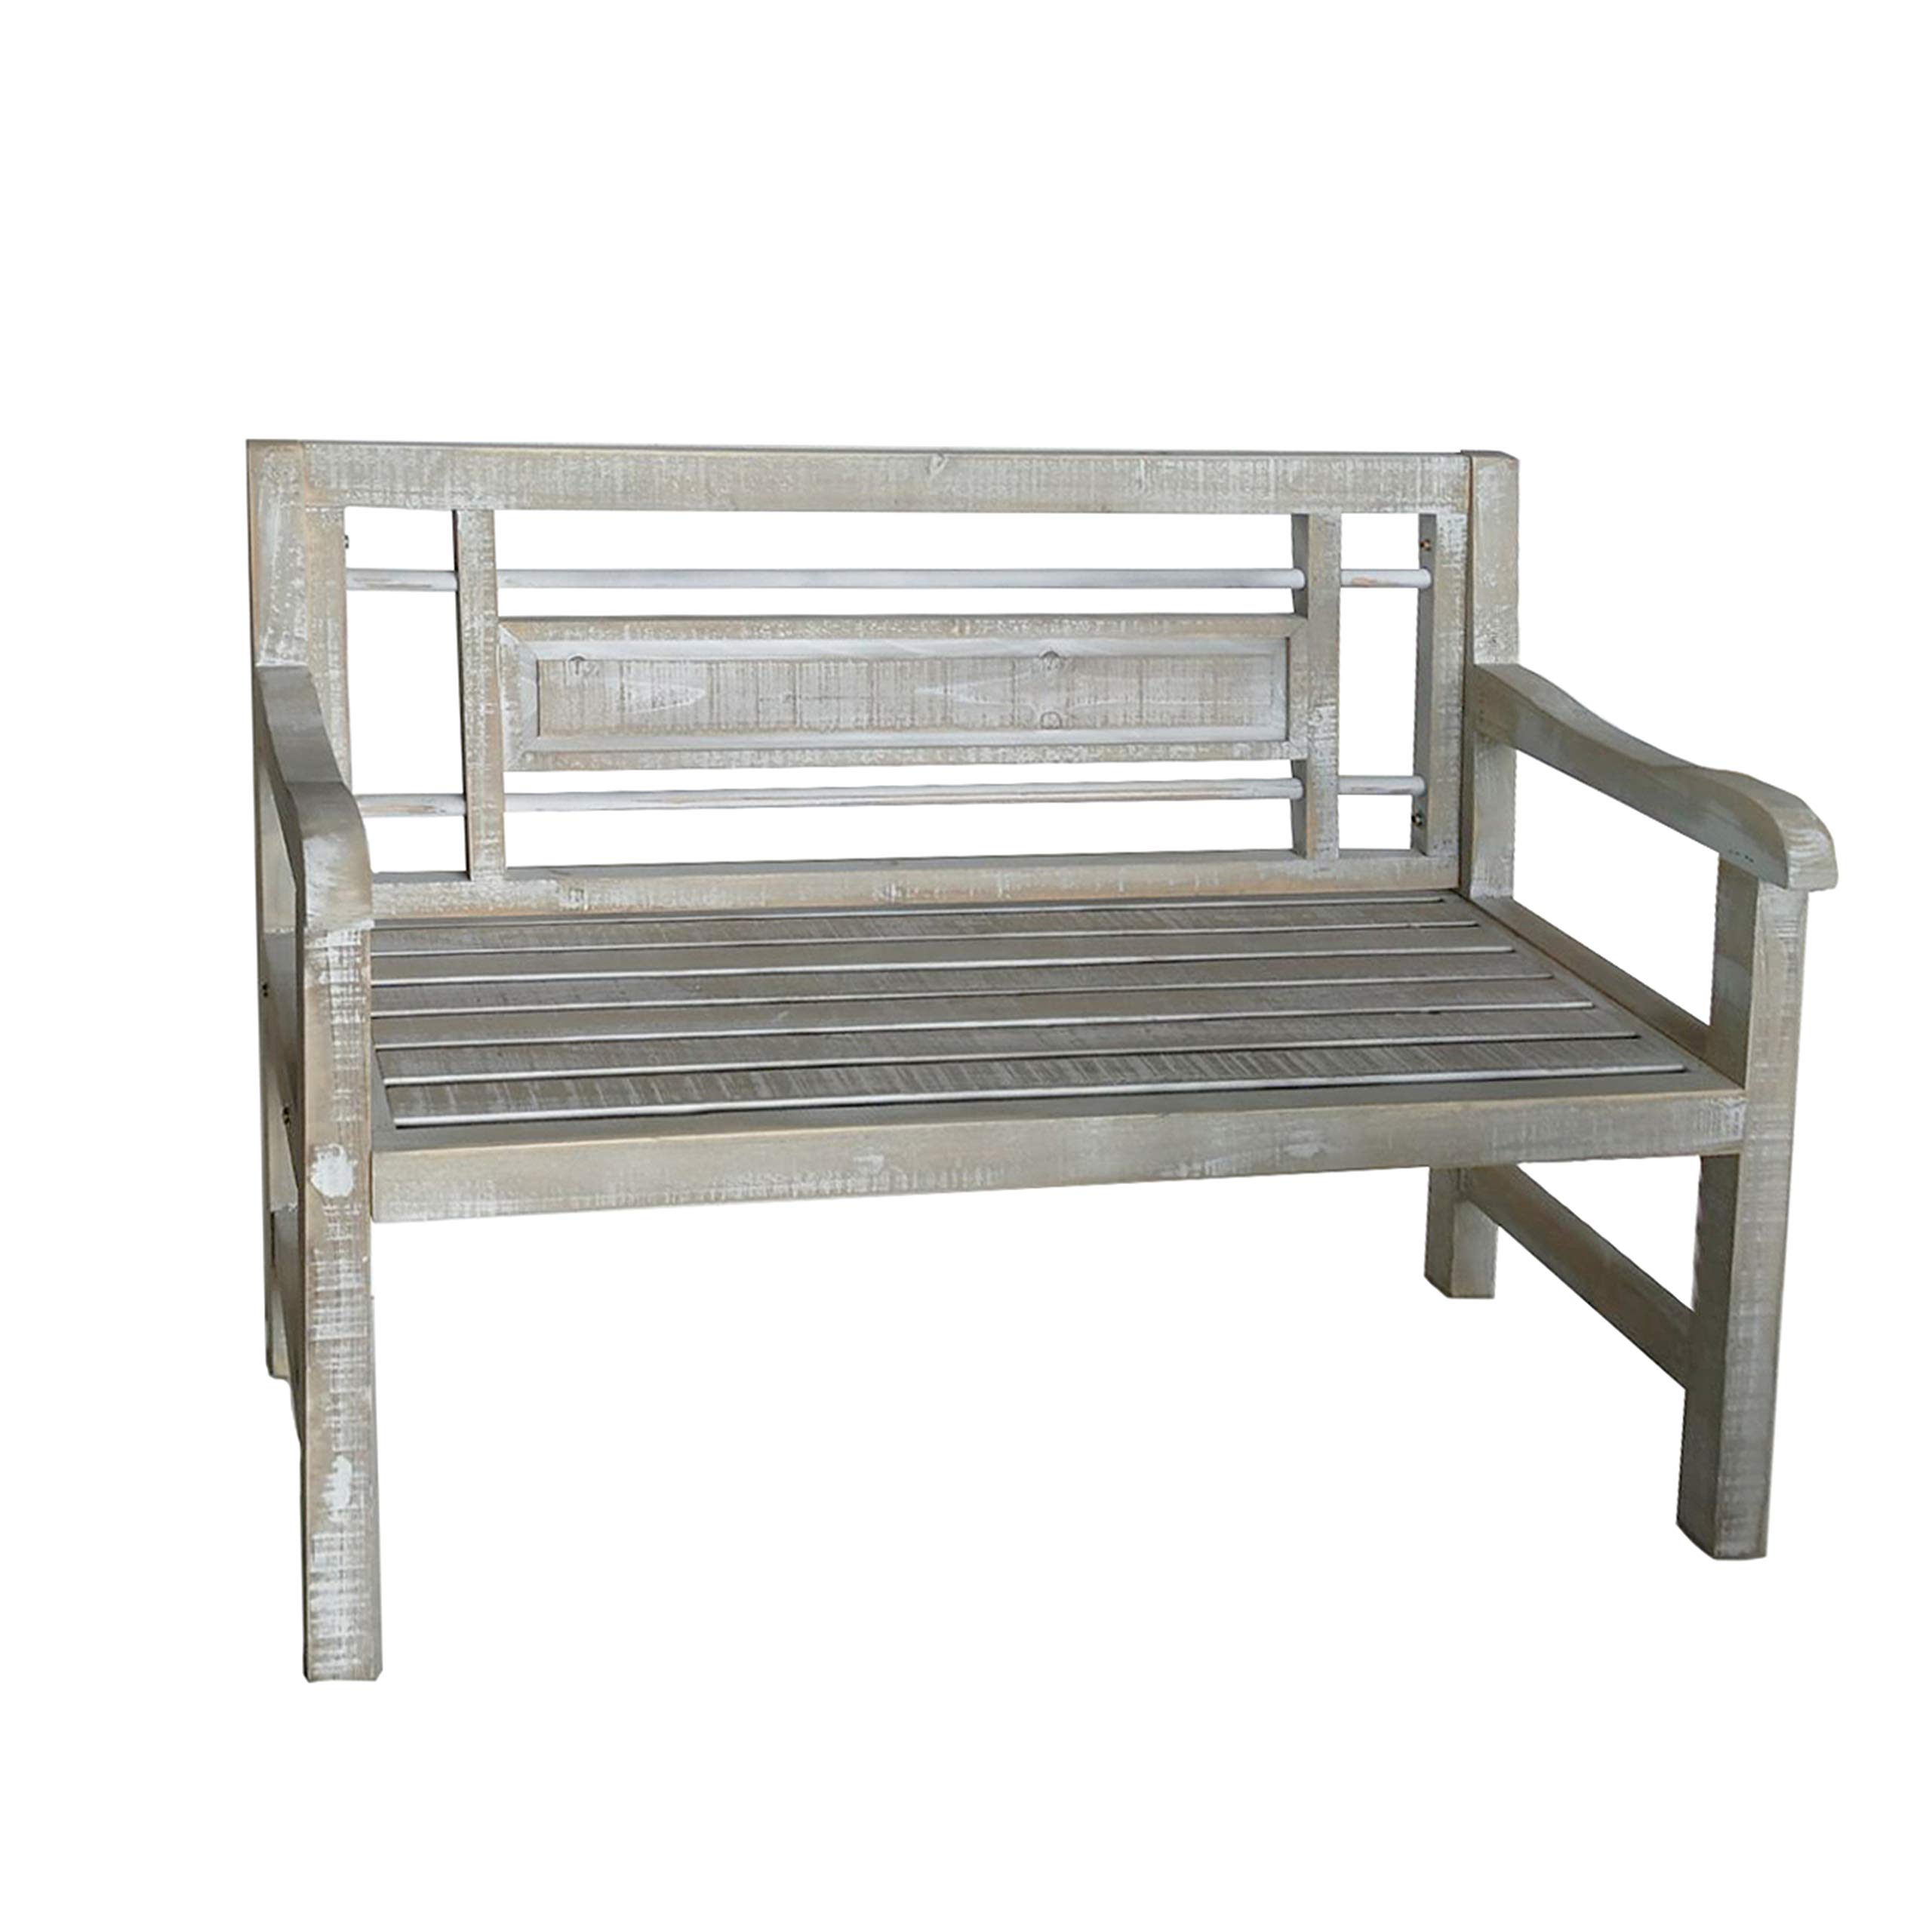 Benjara BM188049 Wooden Bench with Geometric Back and Slatted Seat, Gray